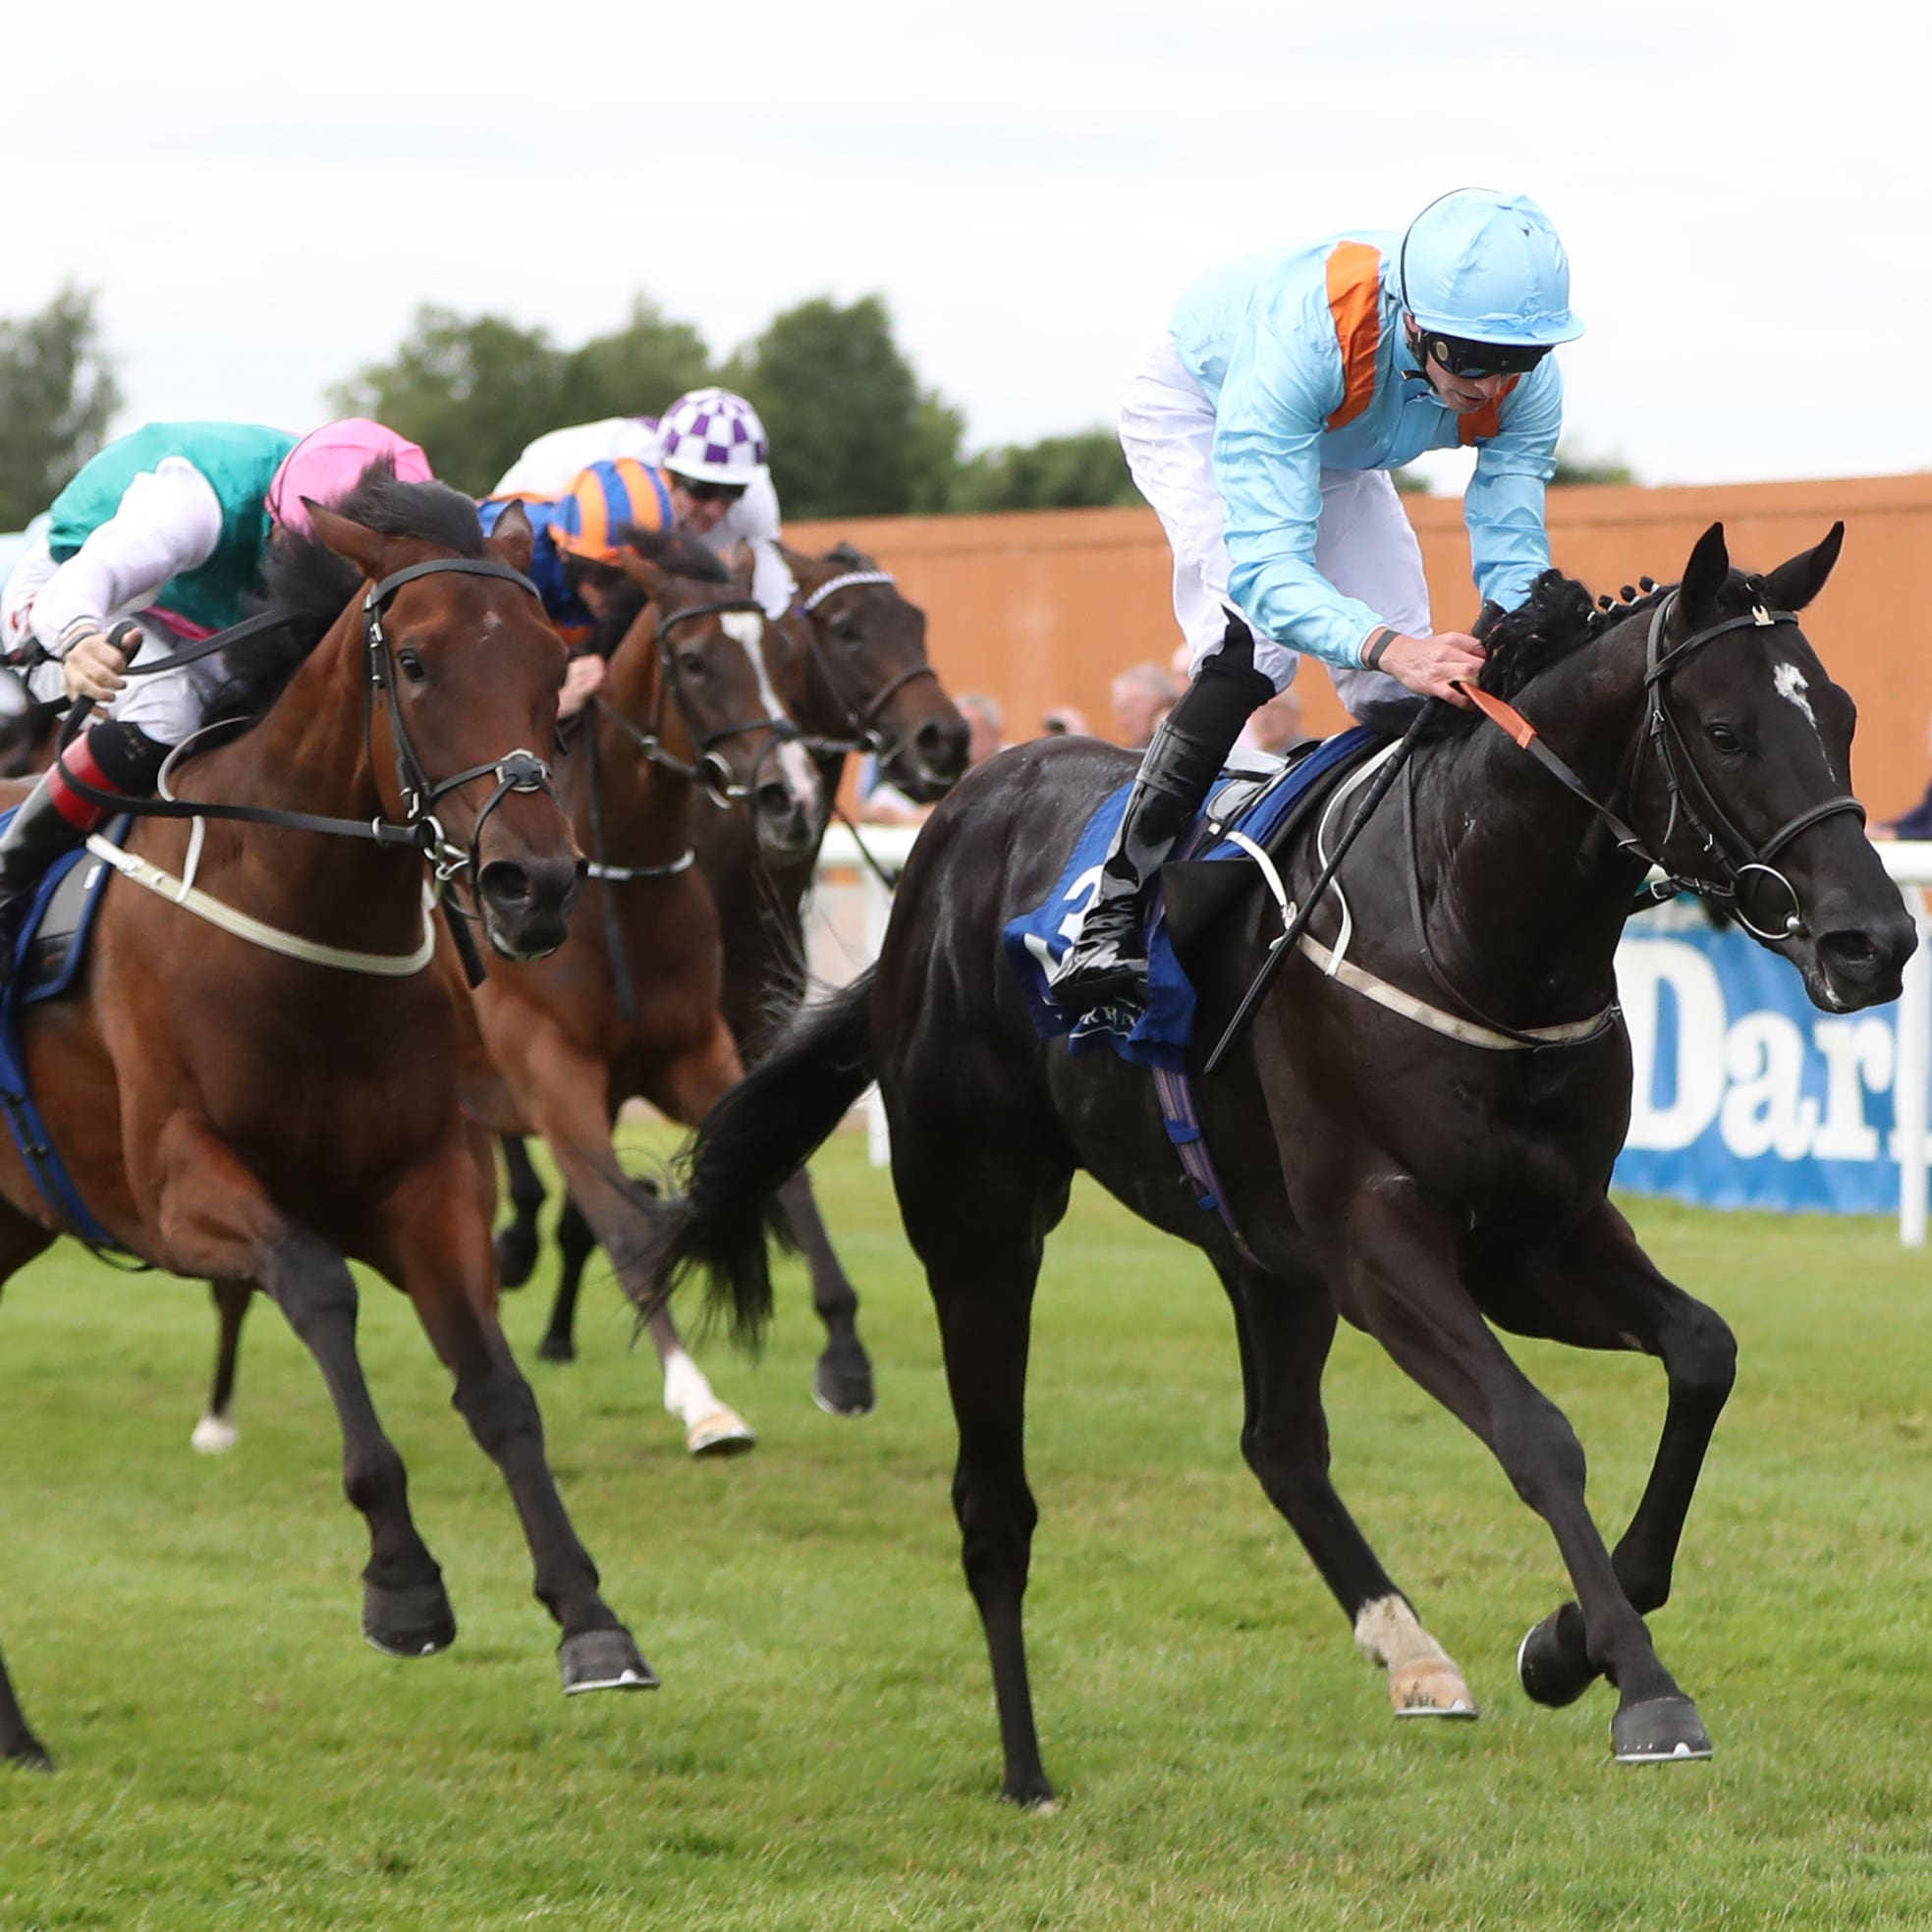 Marie's Diamond (right) wins the Anglesey Stakes under James Doyle